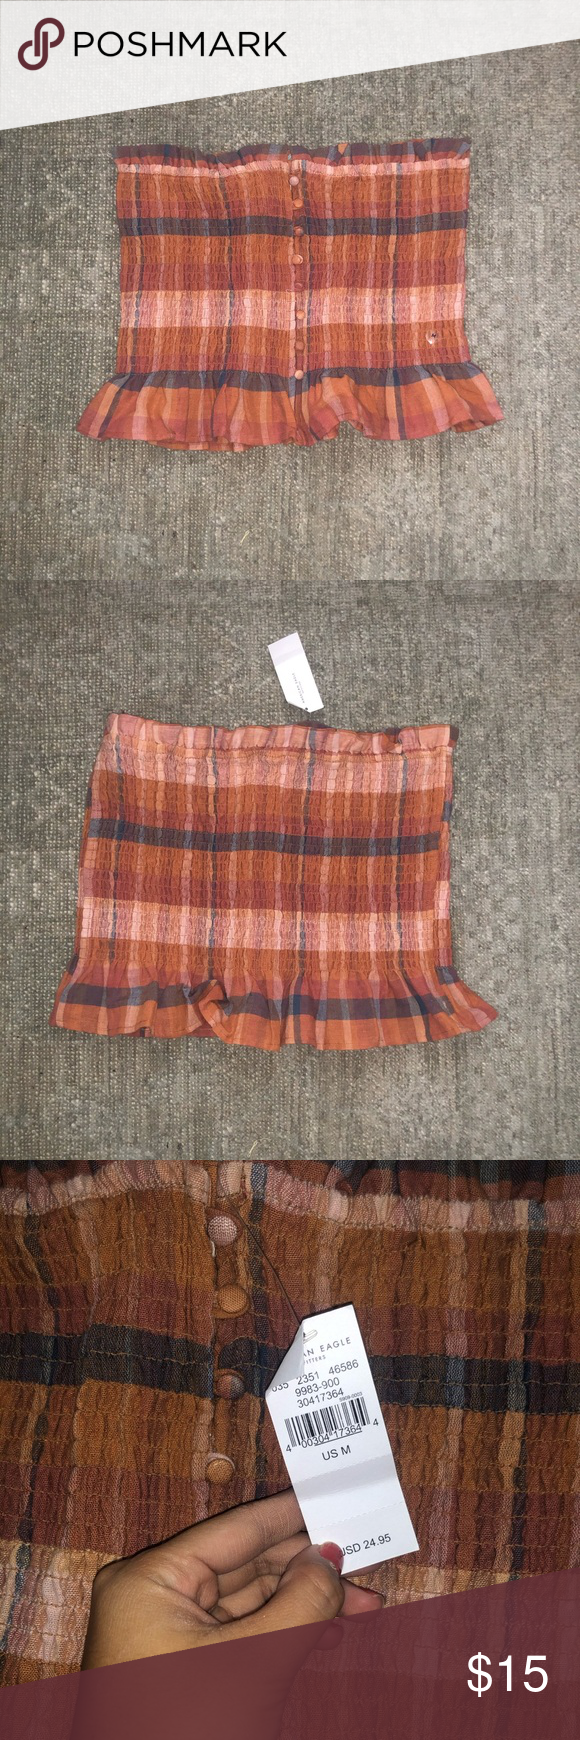 American Eagle Tube Top NWT AE tube top! Super flattering American Eagle Outfitters Tops #tubetopoutfits American Eagle Tube Top NWT AE tube top! Super flattering American Eagle Outfitters Tops #tubetopoutfits